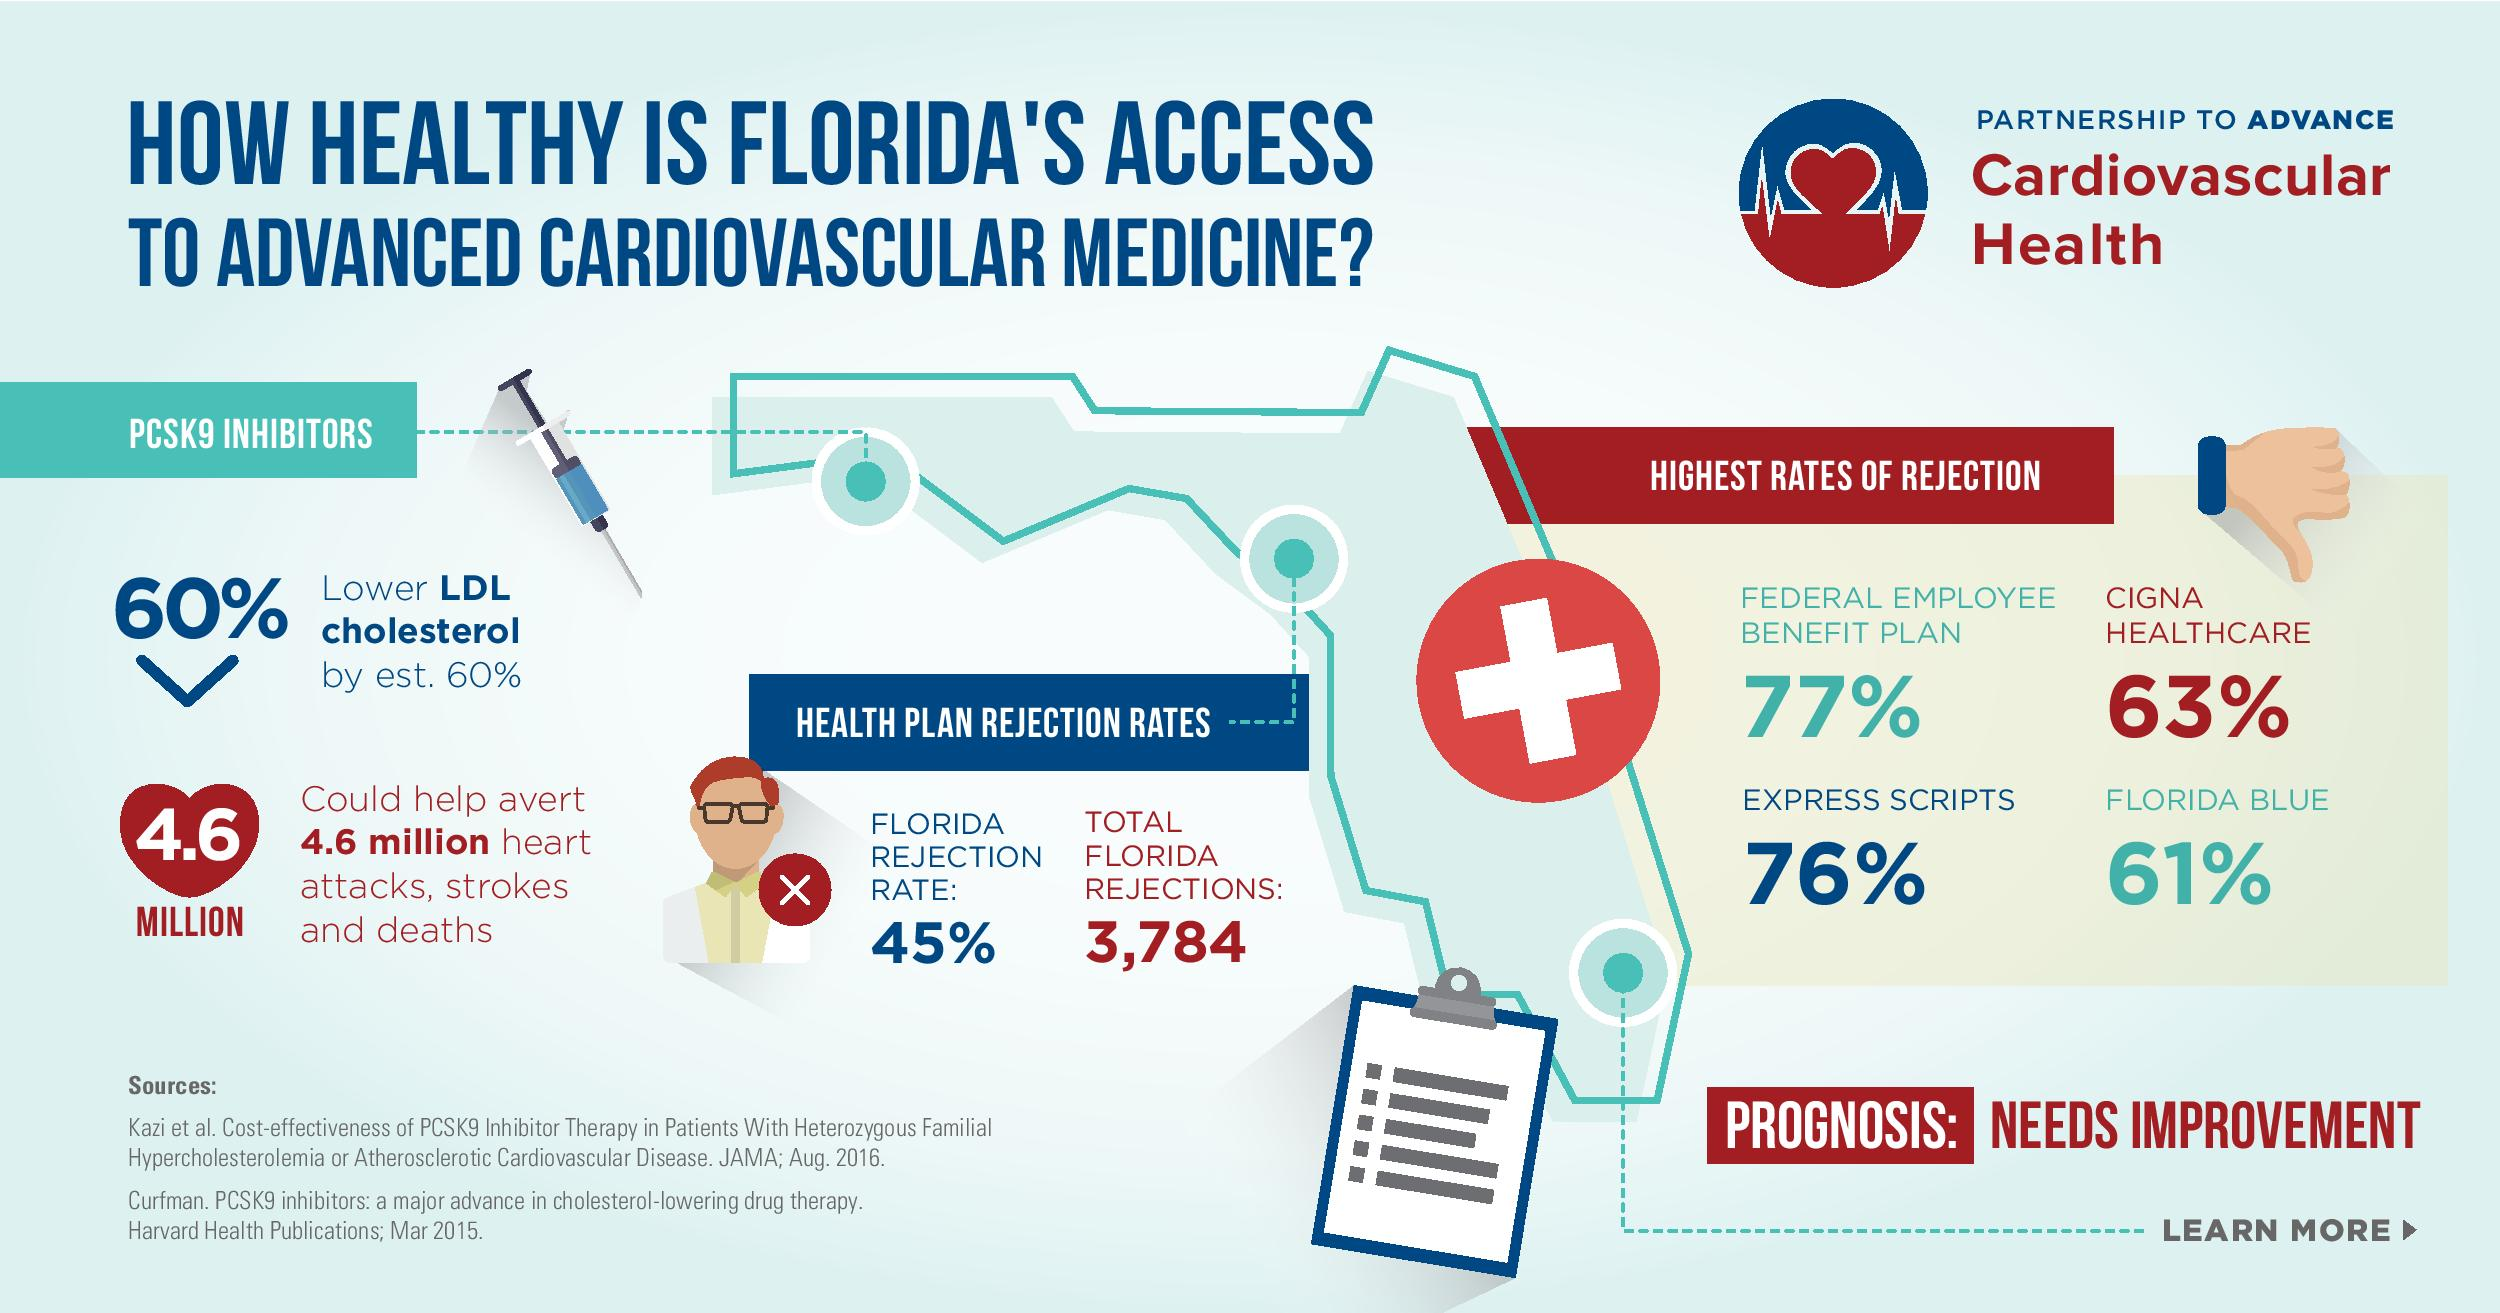 PACH_Florida_Infographic-page-001.jpg